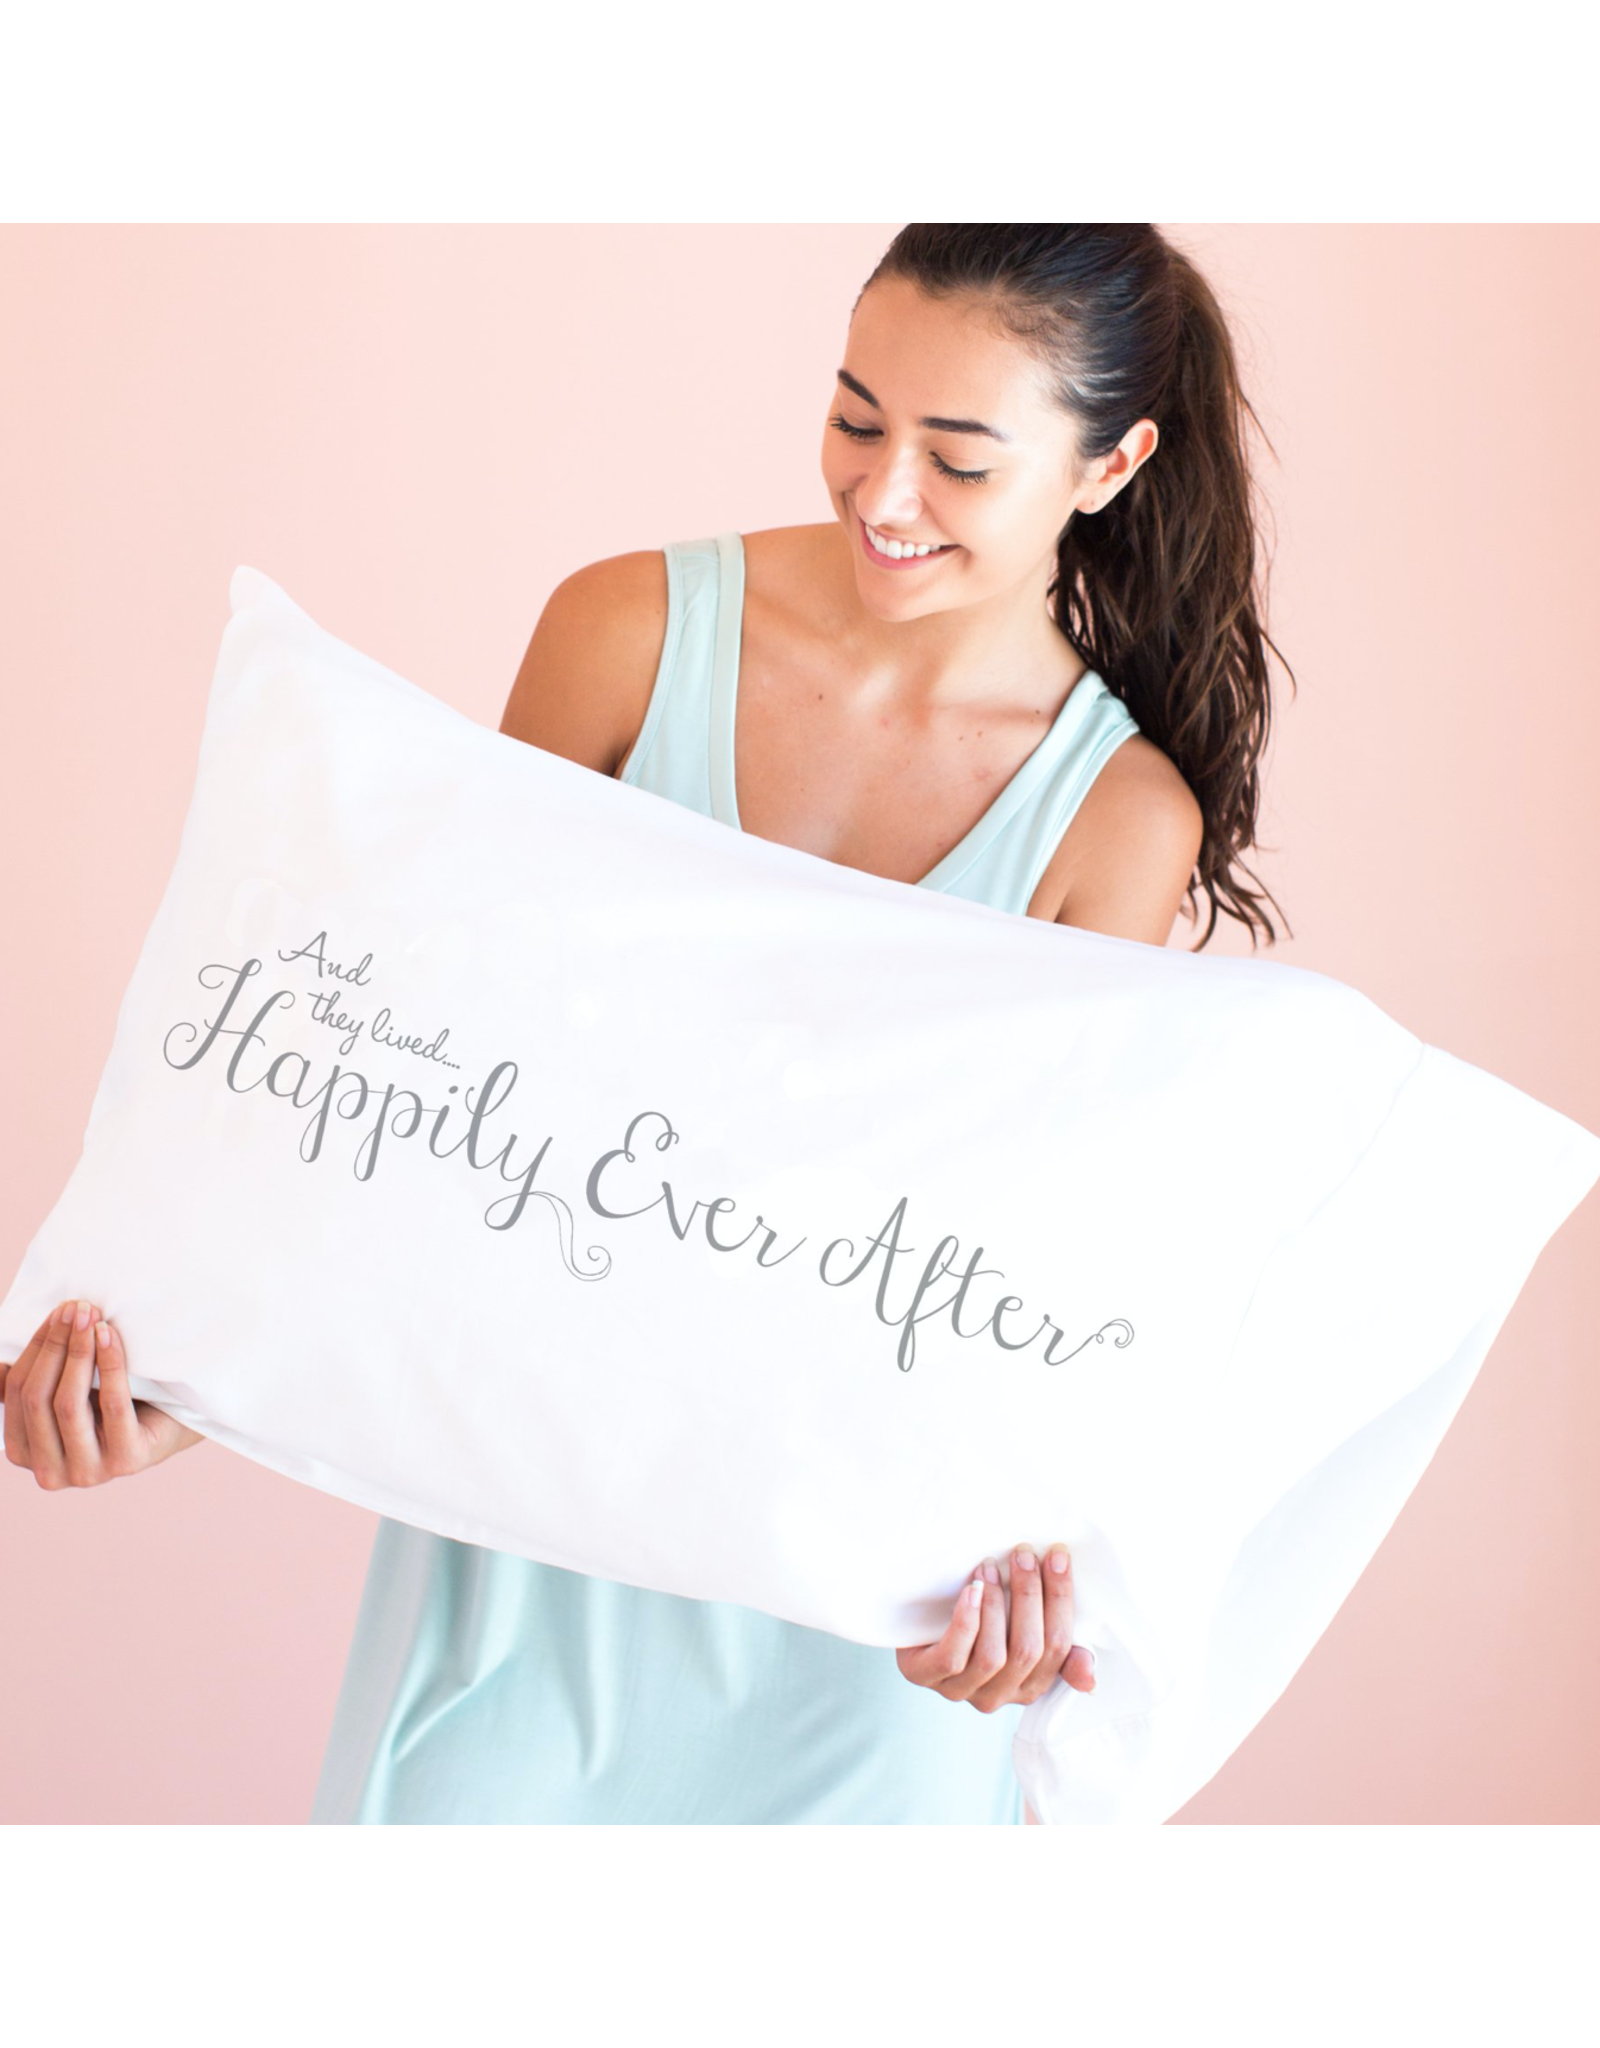 PCSTD Happily Ever After Set